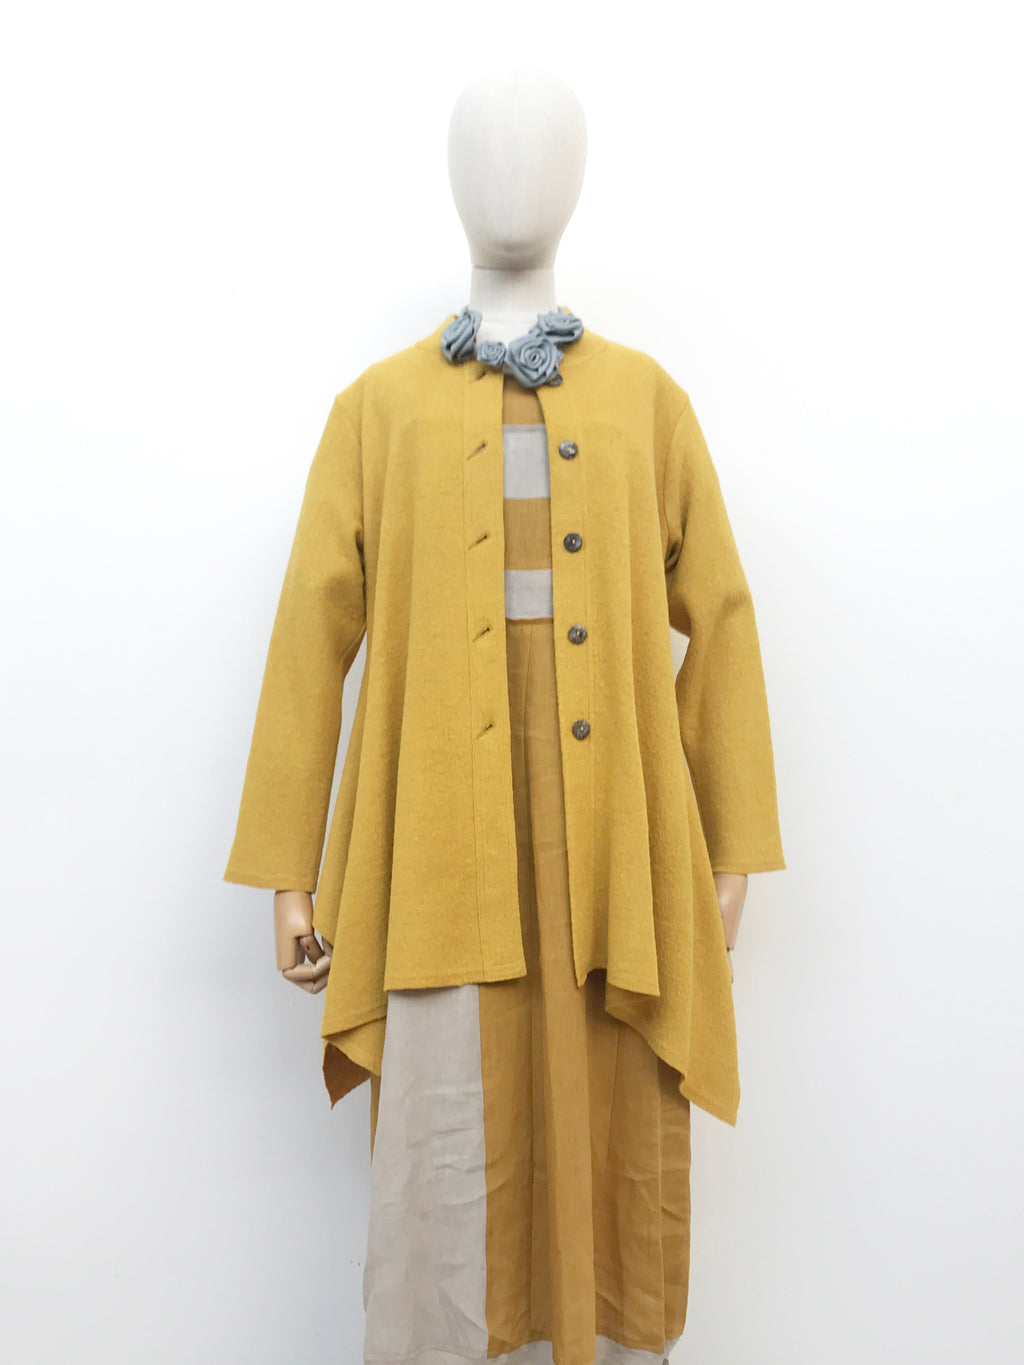 Tiffany Treloar, Atomic yellow cardigan - Tiffany Treloar